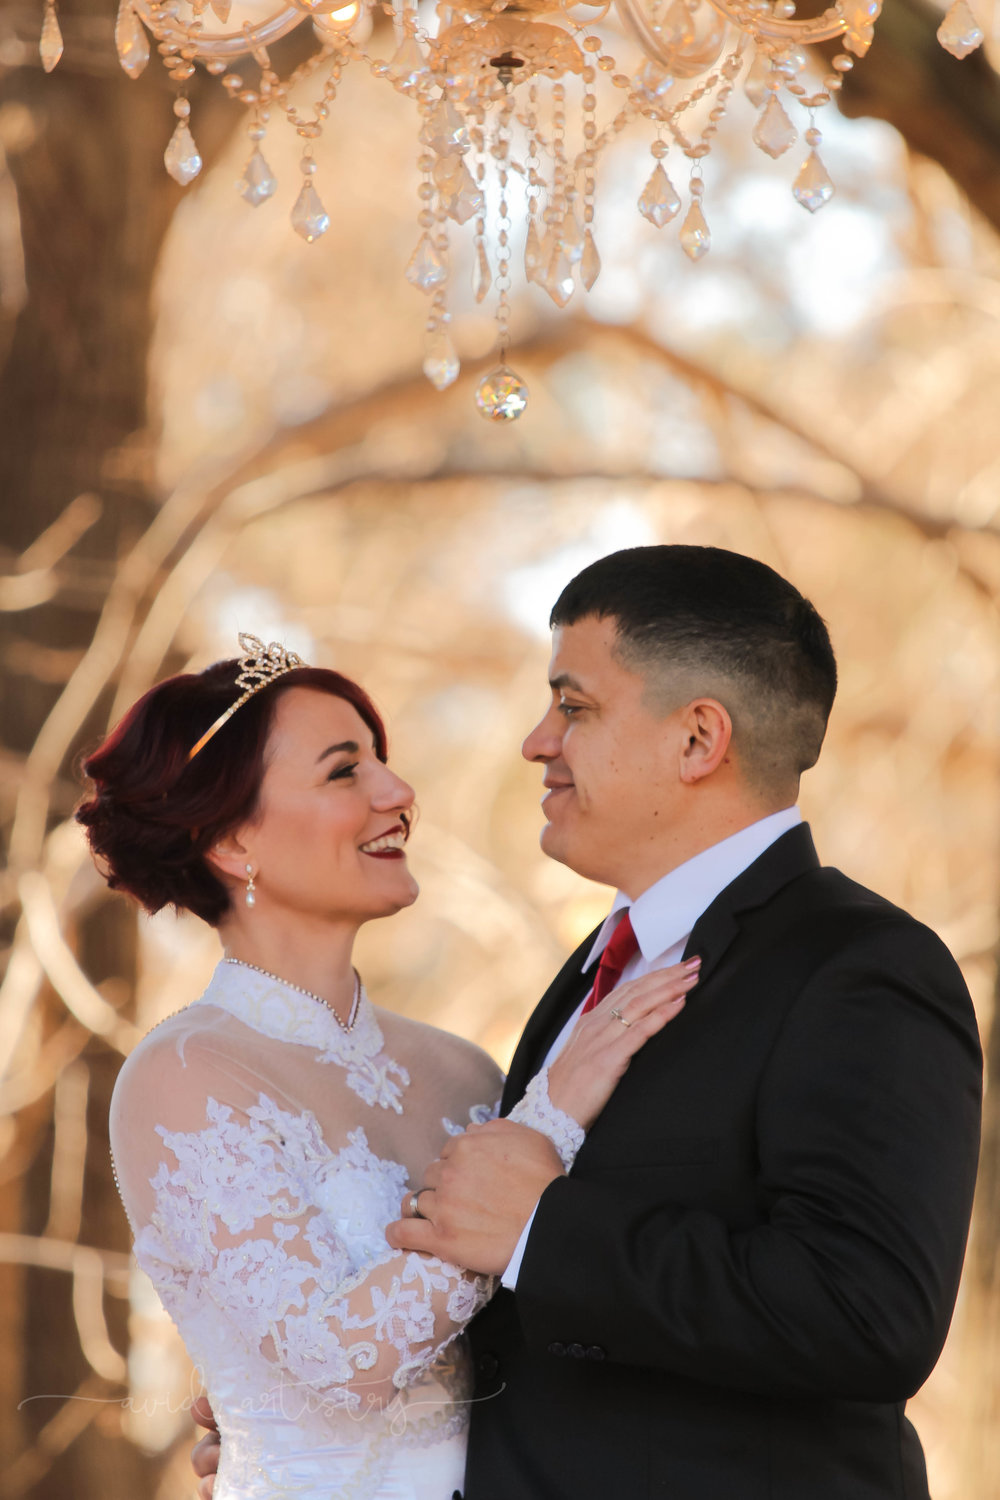 Wedding Photographer, Wichita, KS. Avid Artistry. Vanya Designs.